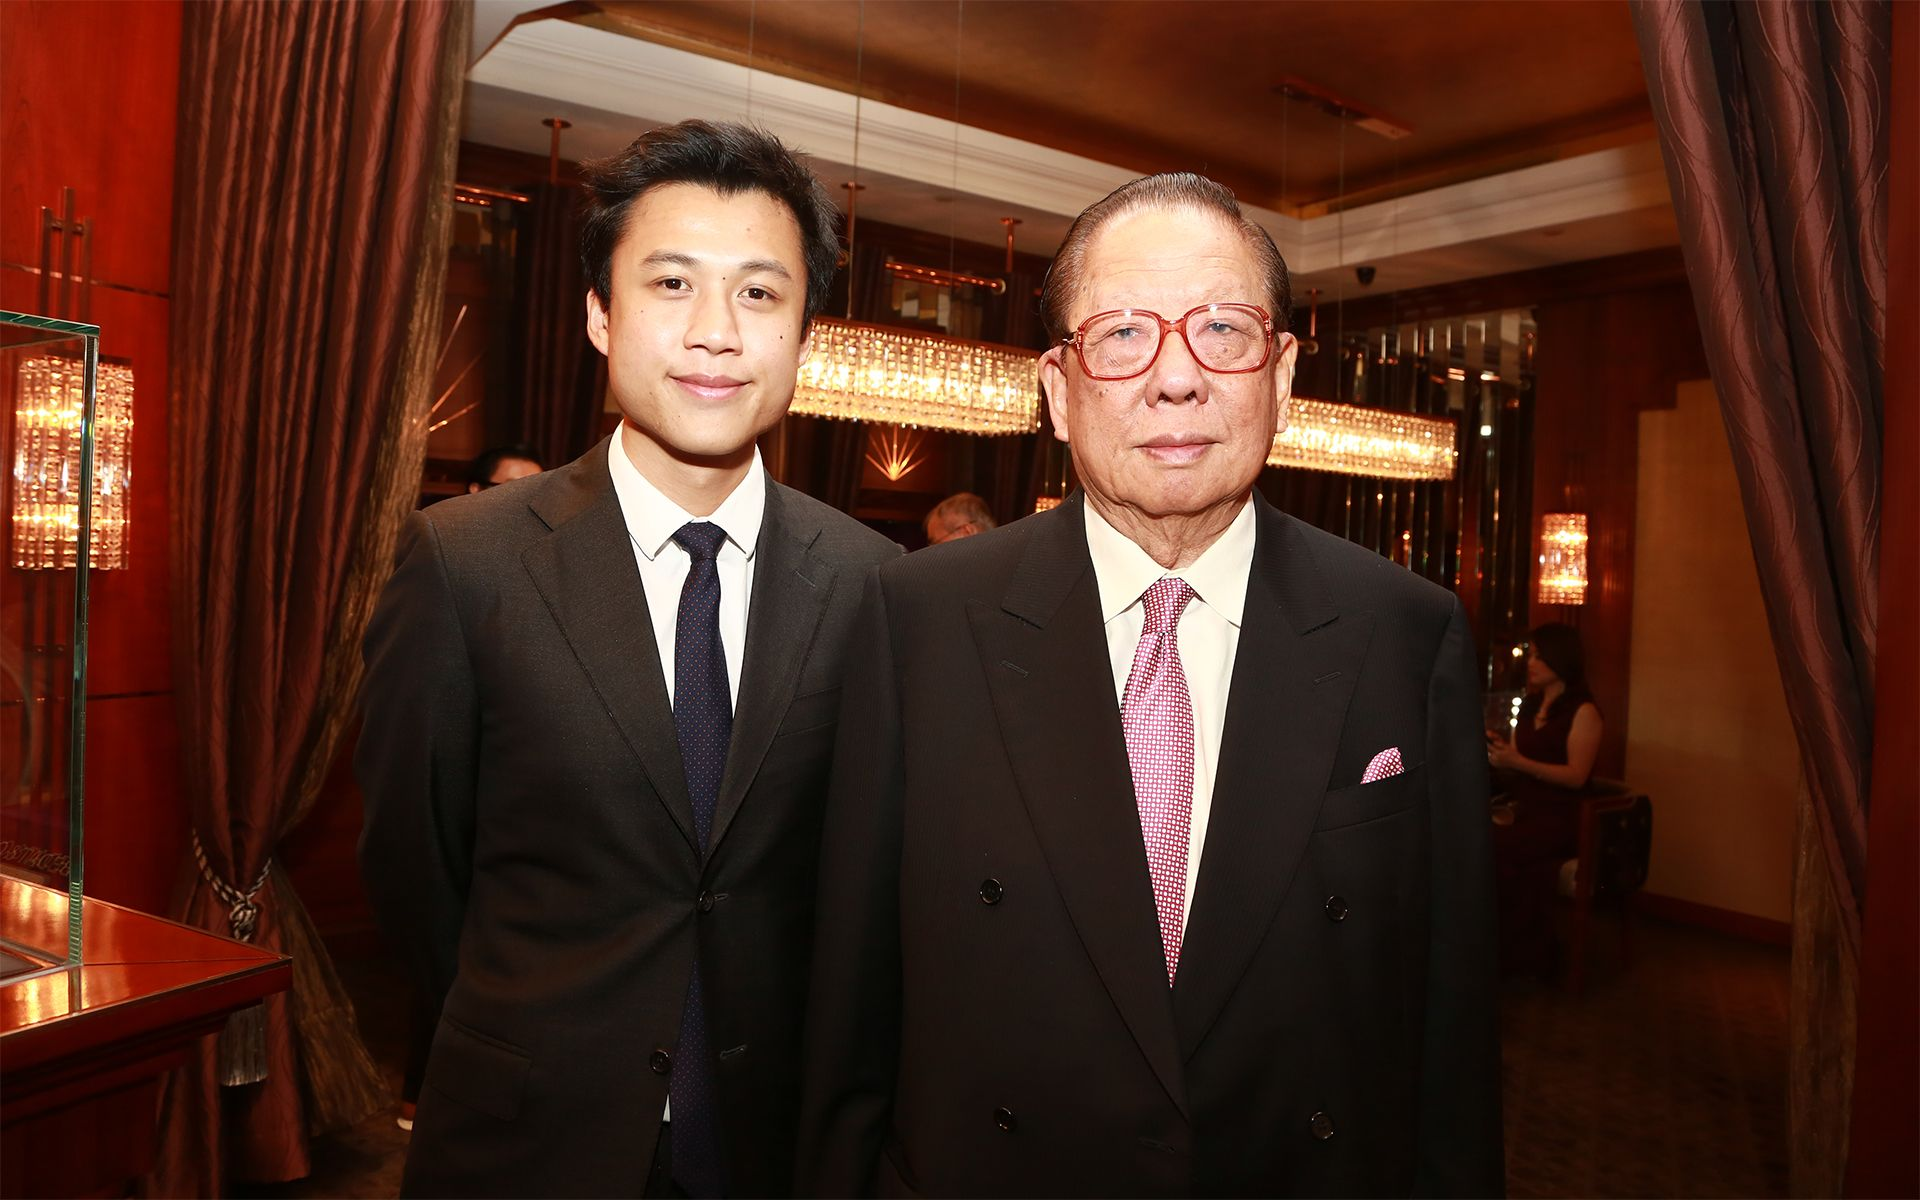 Joshua Yeoh and Tan Sri Yeoh Tiong Lay at A Journey Through Time VIII: Gala dinner hosted by Bedat & Co in December 2014